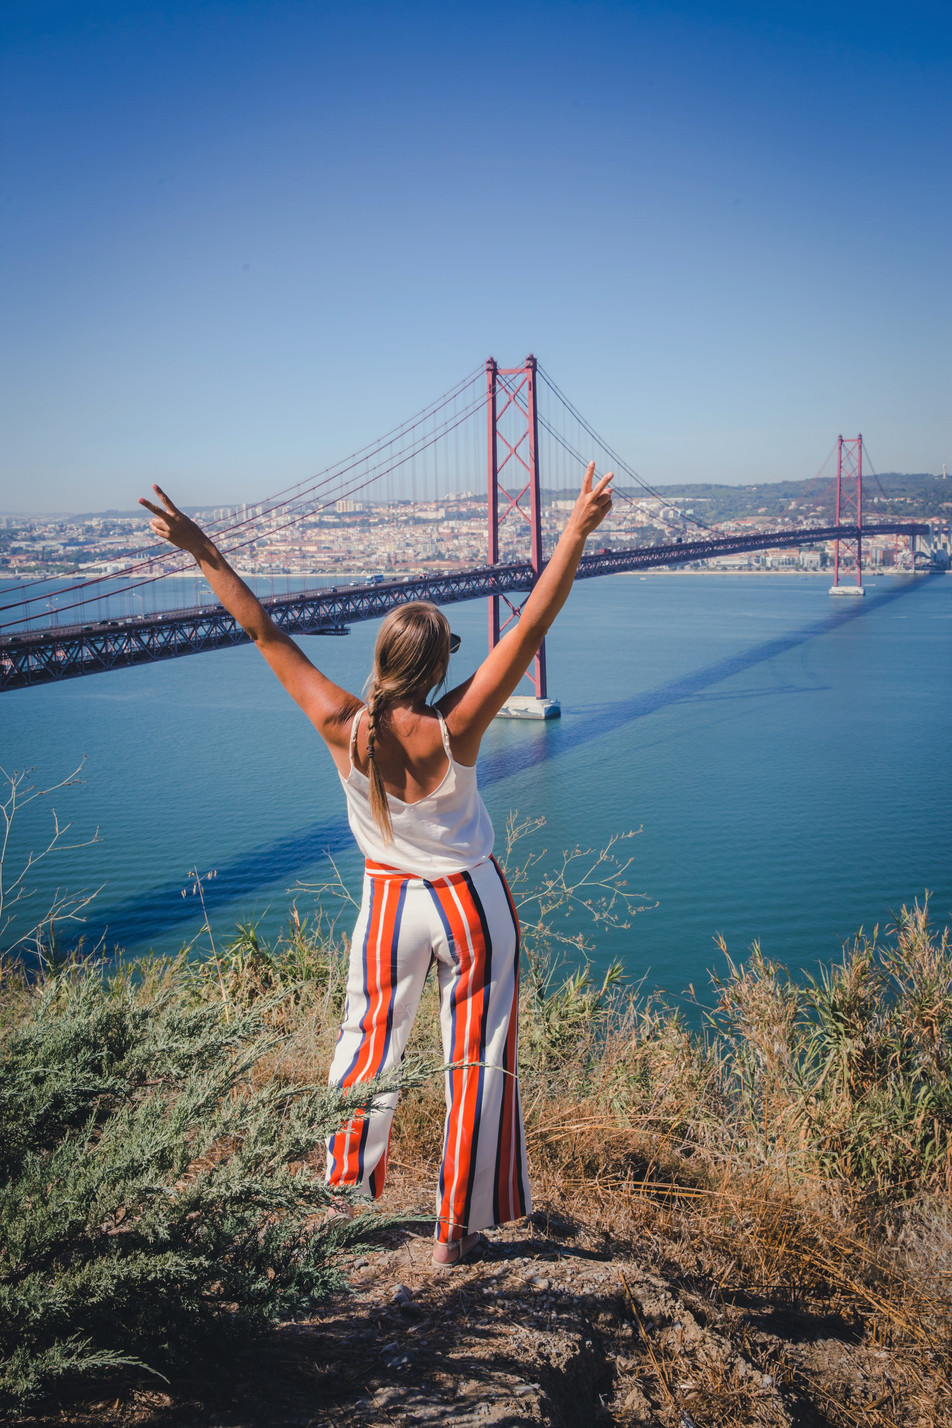 Instagrammable Lisbon girlstrip – 9 top spots & sights of the Portuguese capital